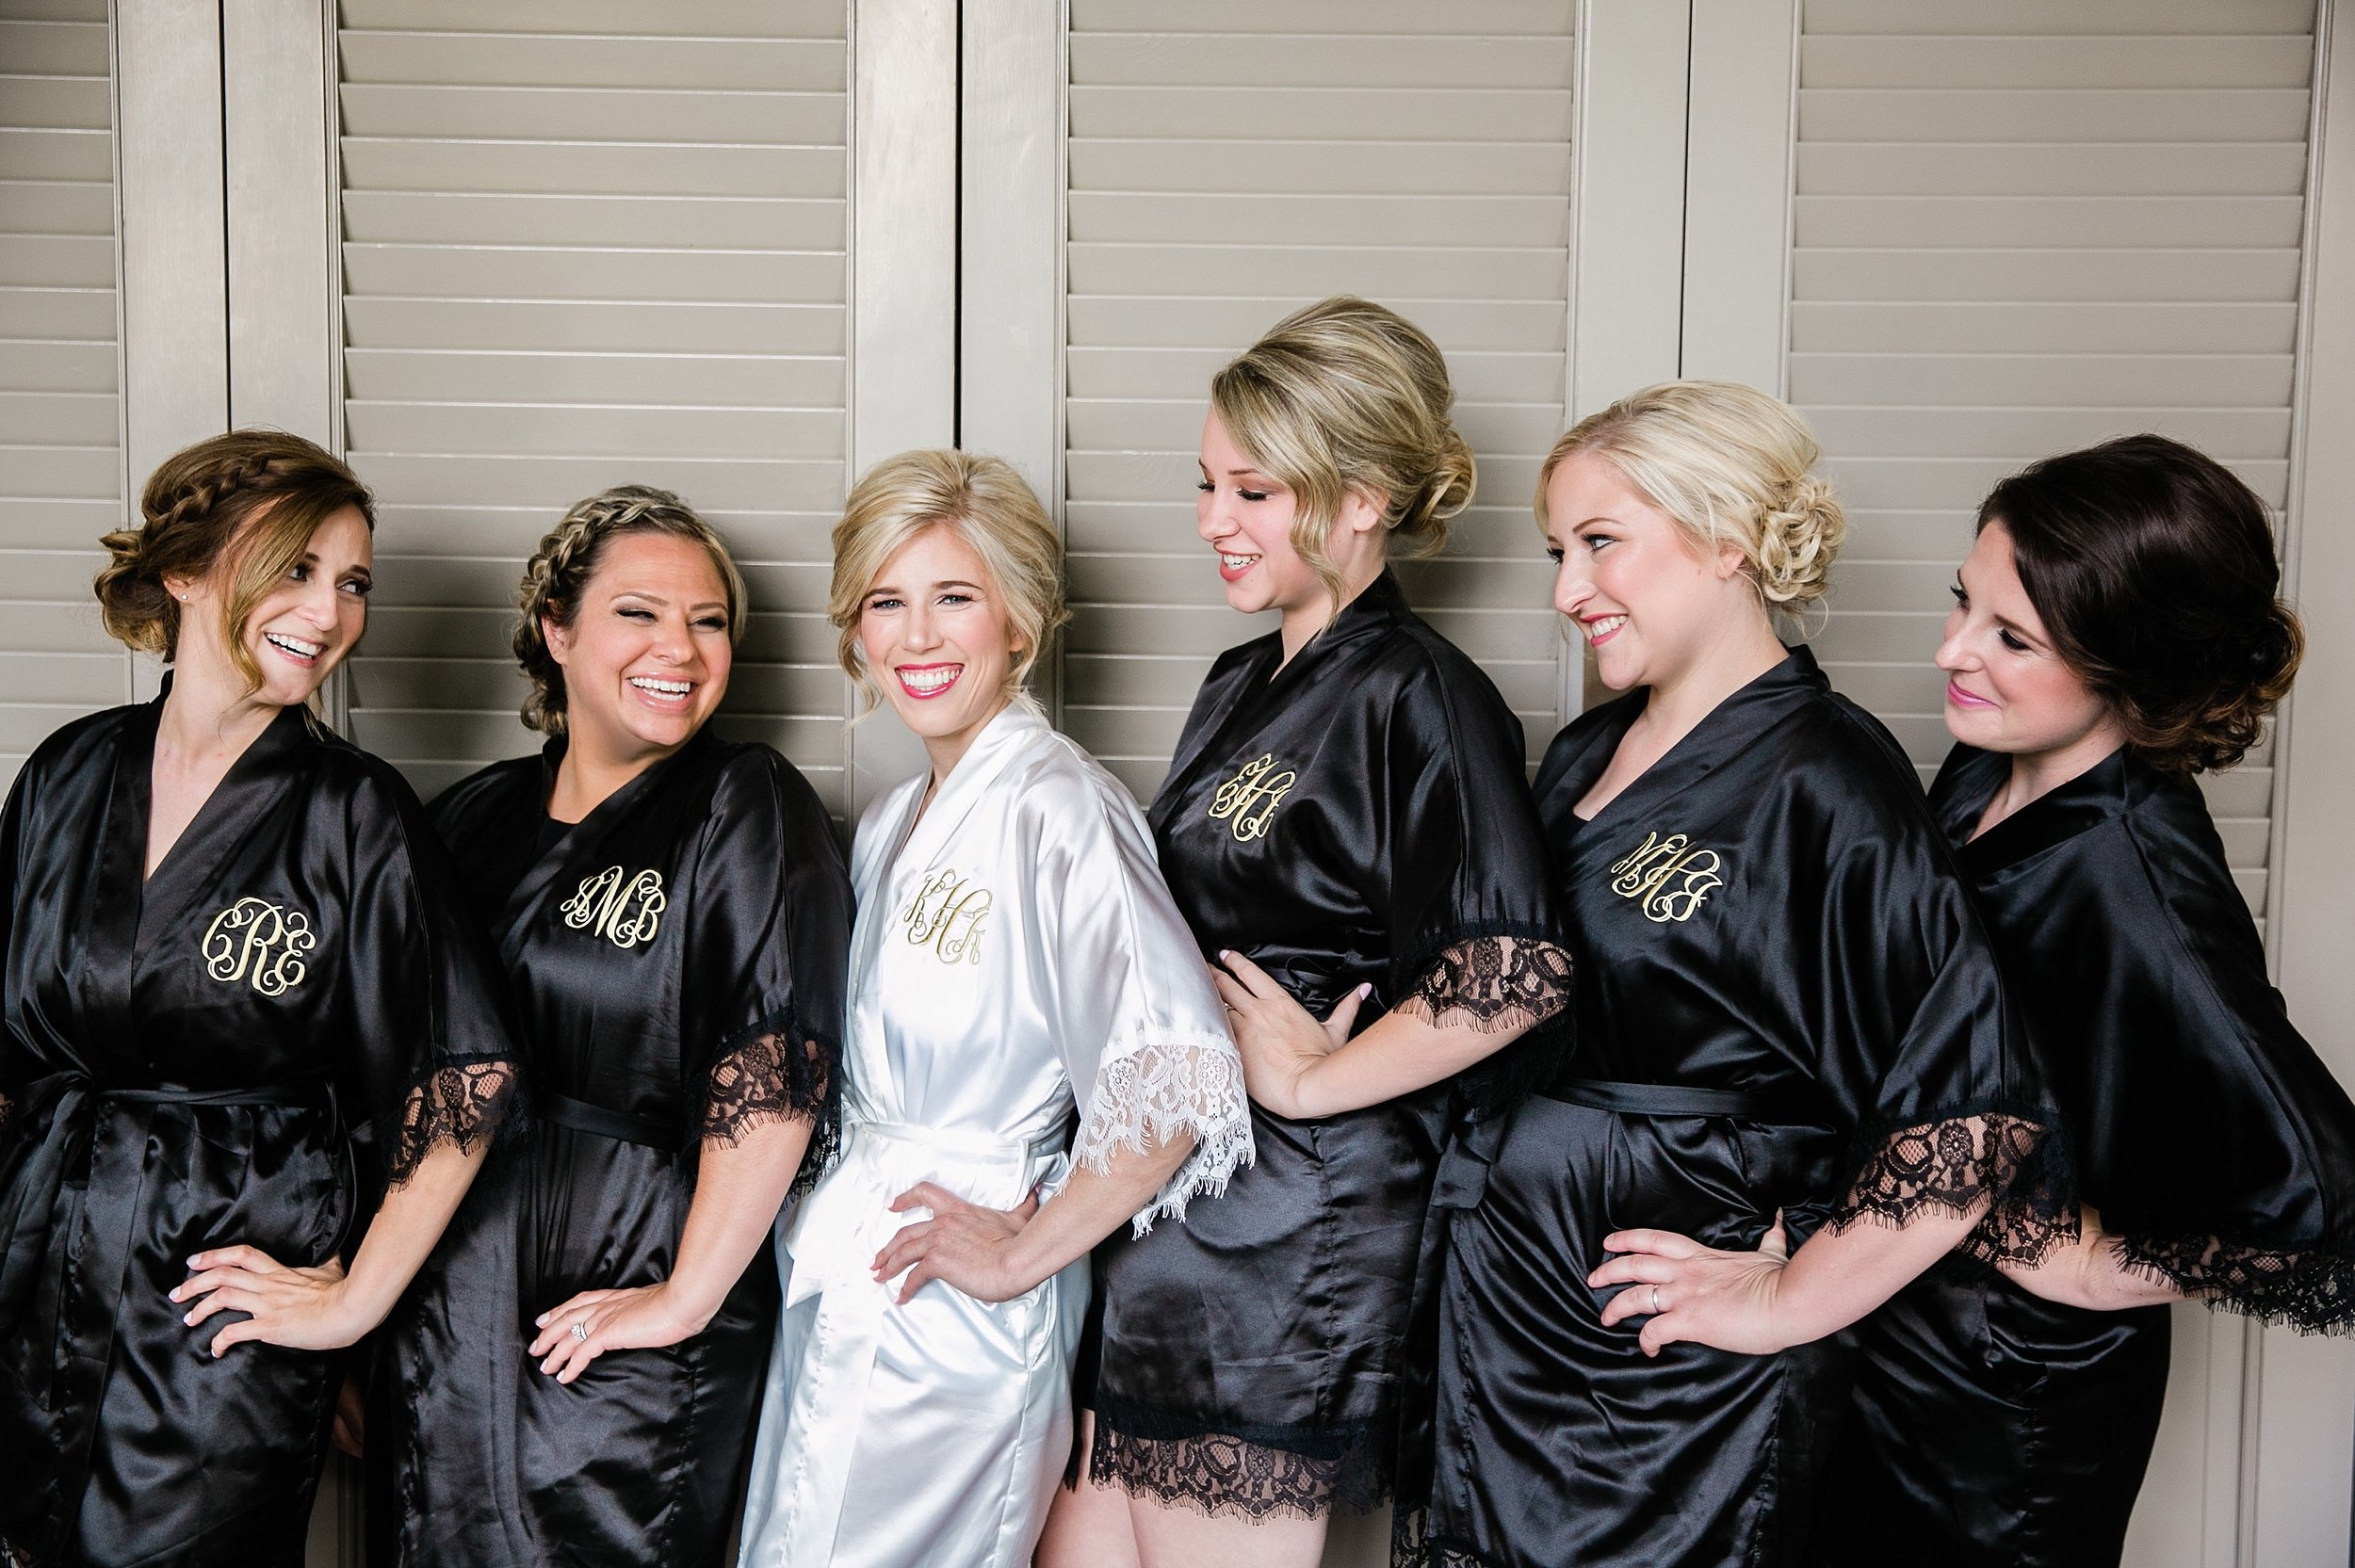 wichita-falls-country-club-wedding-first-presbyterian-church-wedding-photographer-black-white-tiffanyring-lauren-pinson-photography-00007.jpg